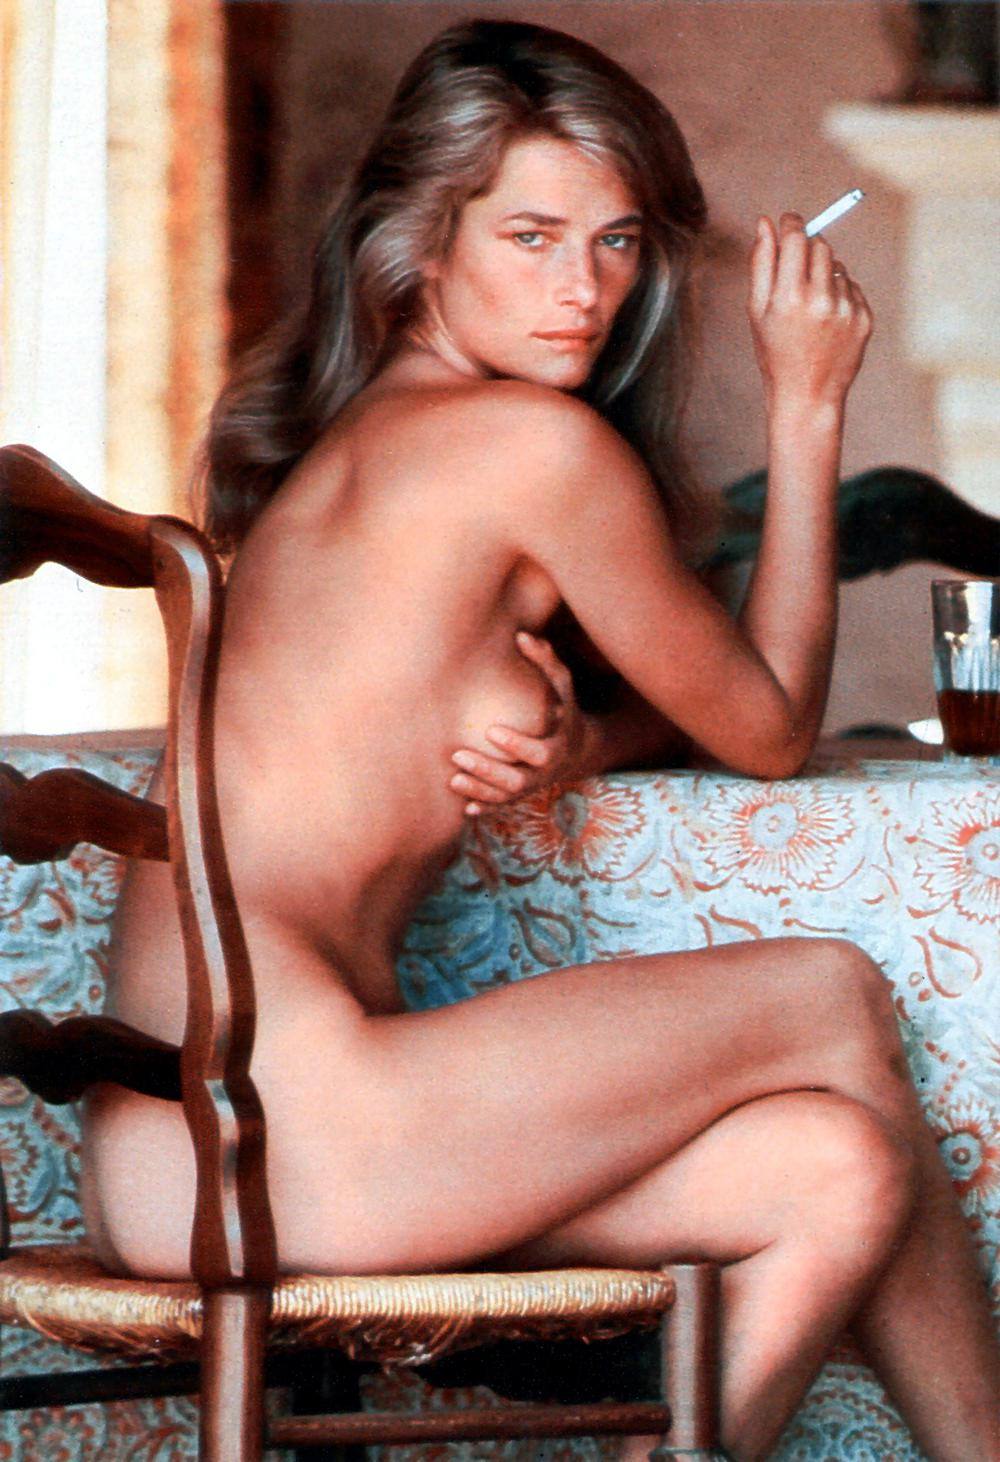 Throwback Thursday: Charlotte Rampling in Playboy 1984